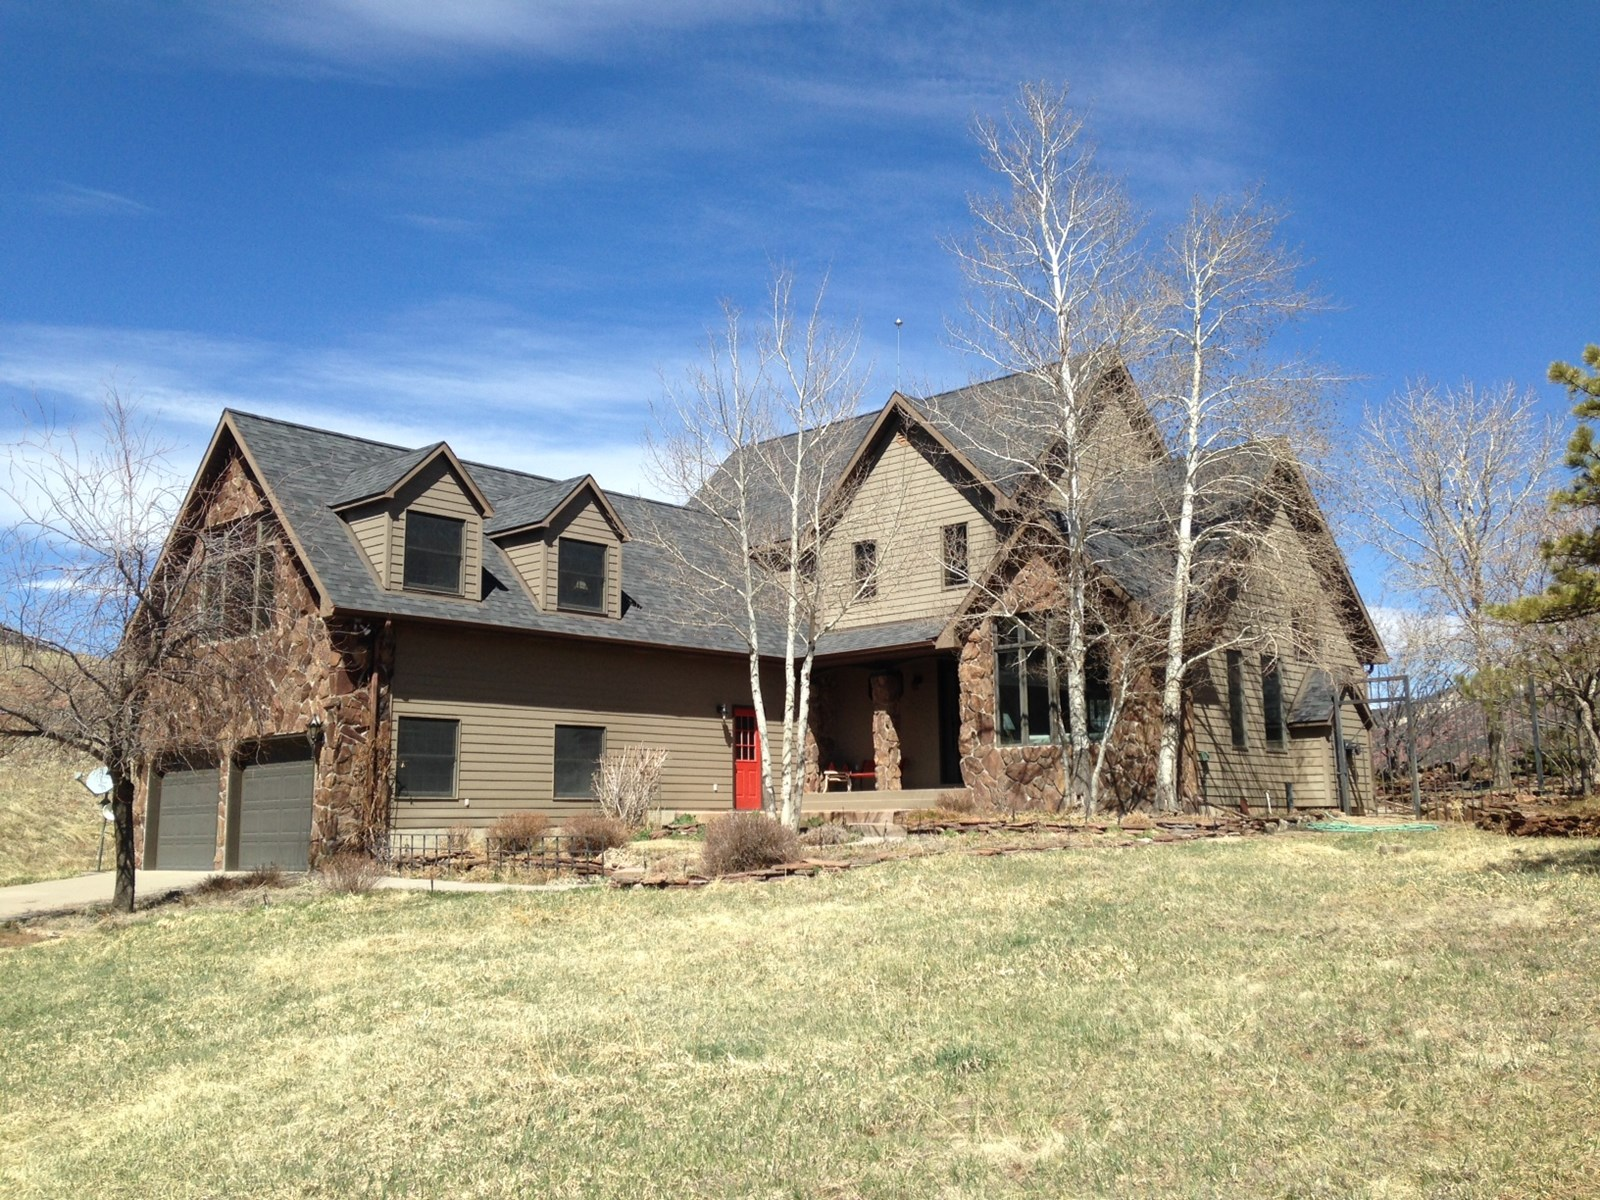 Two Story Home For Sale Ridgway Colorado